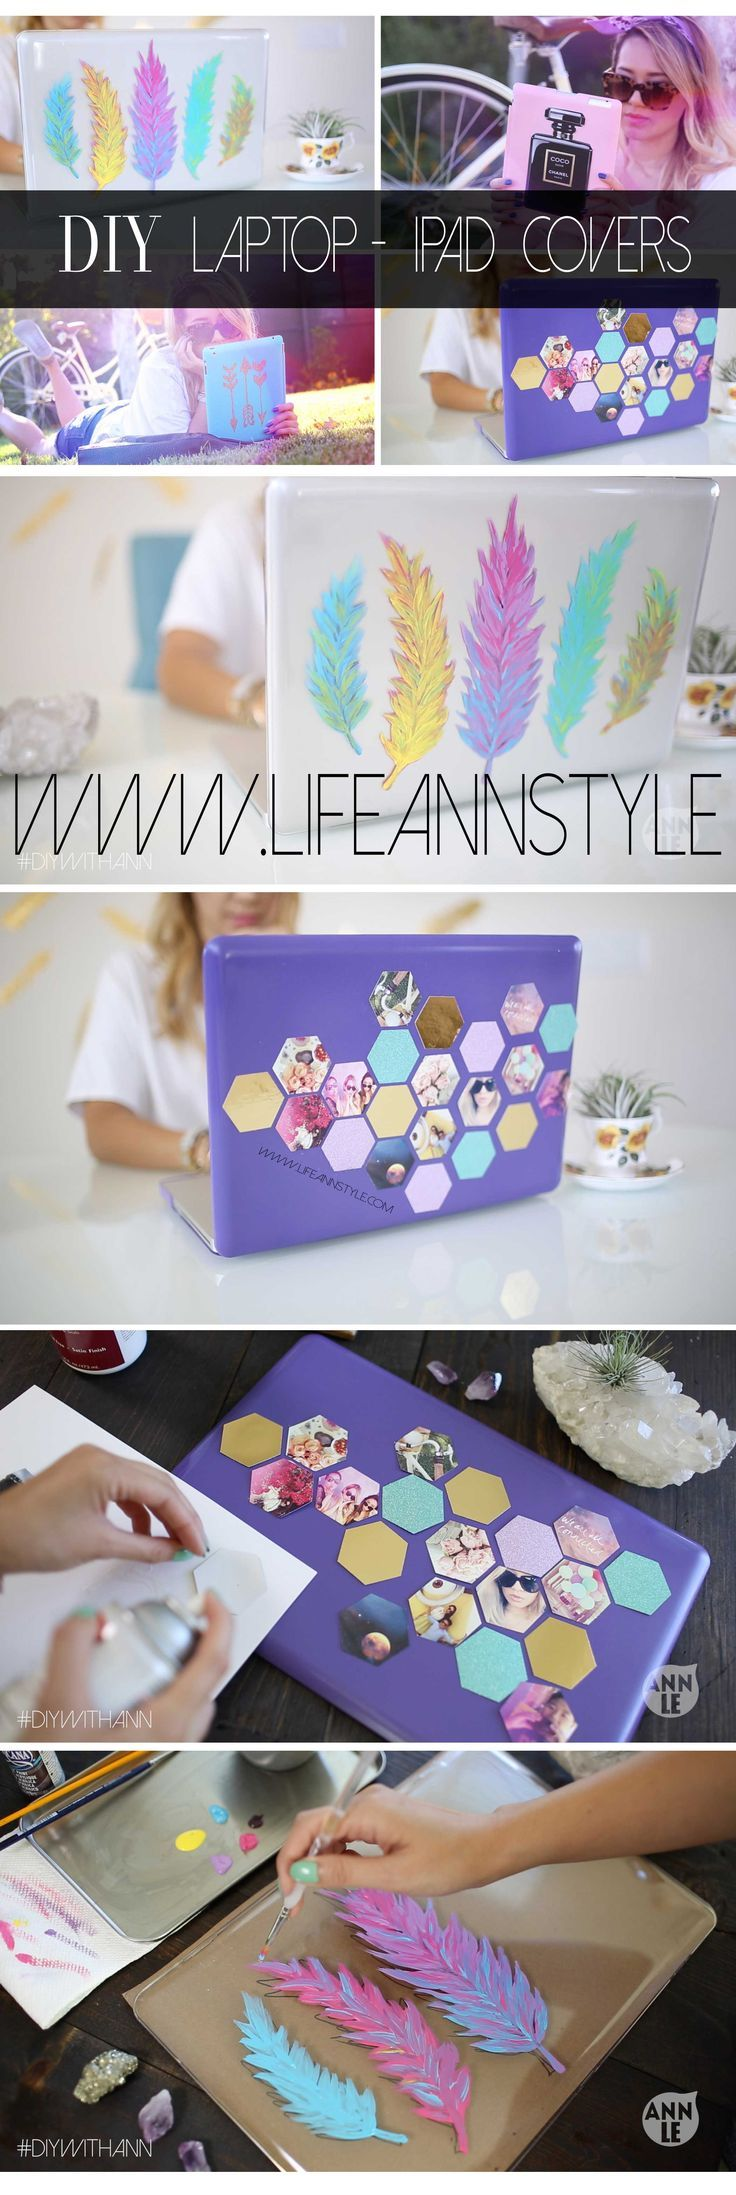 22 DIY Tech Projects - A Little Craft In Your DayA Little Craft In Your Day